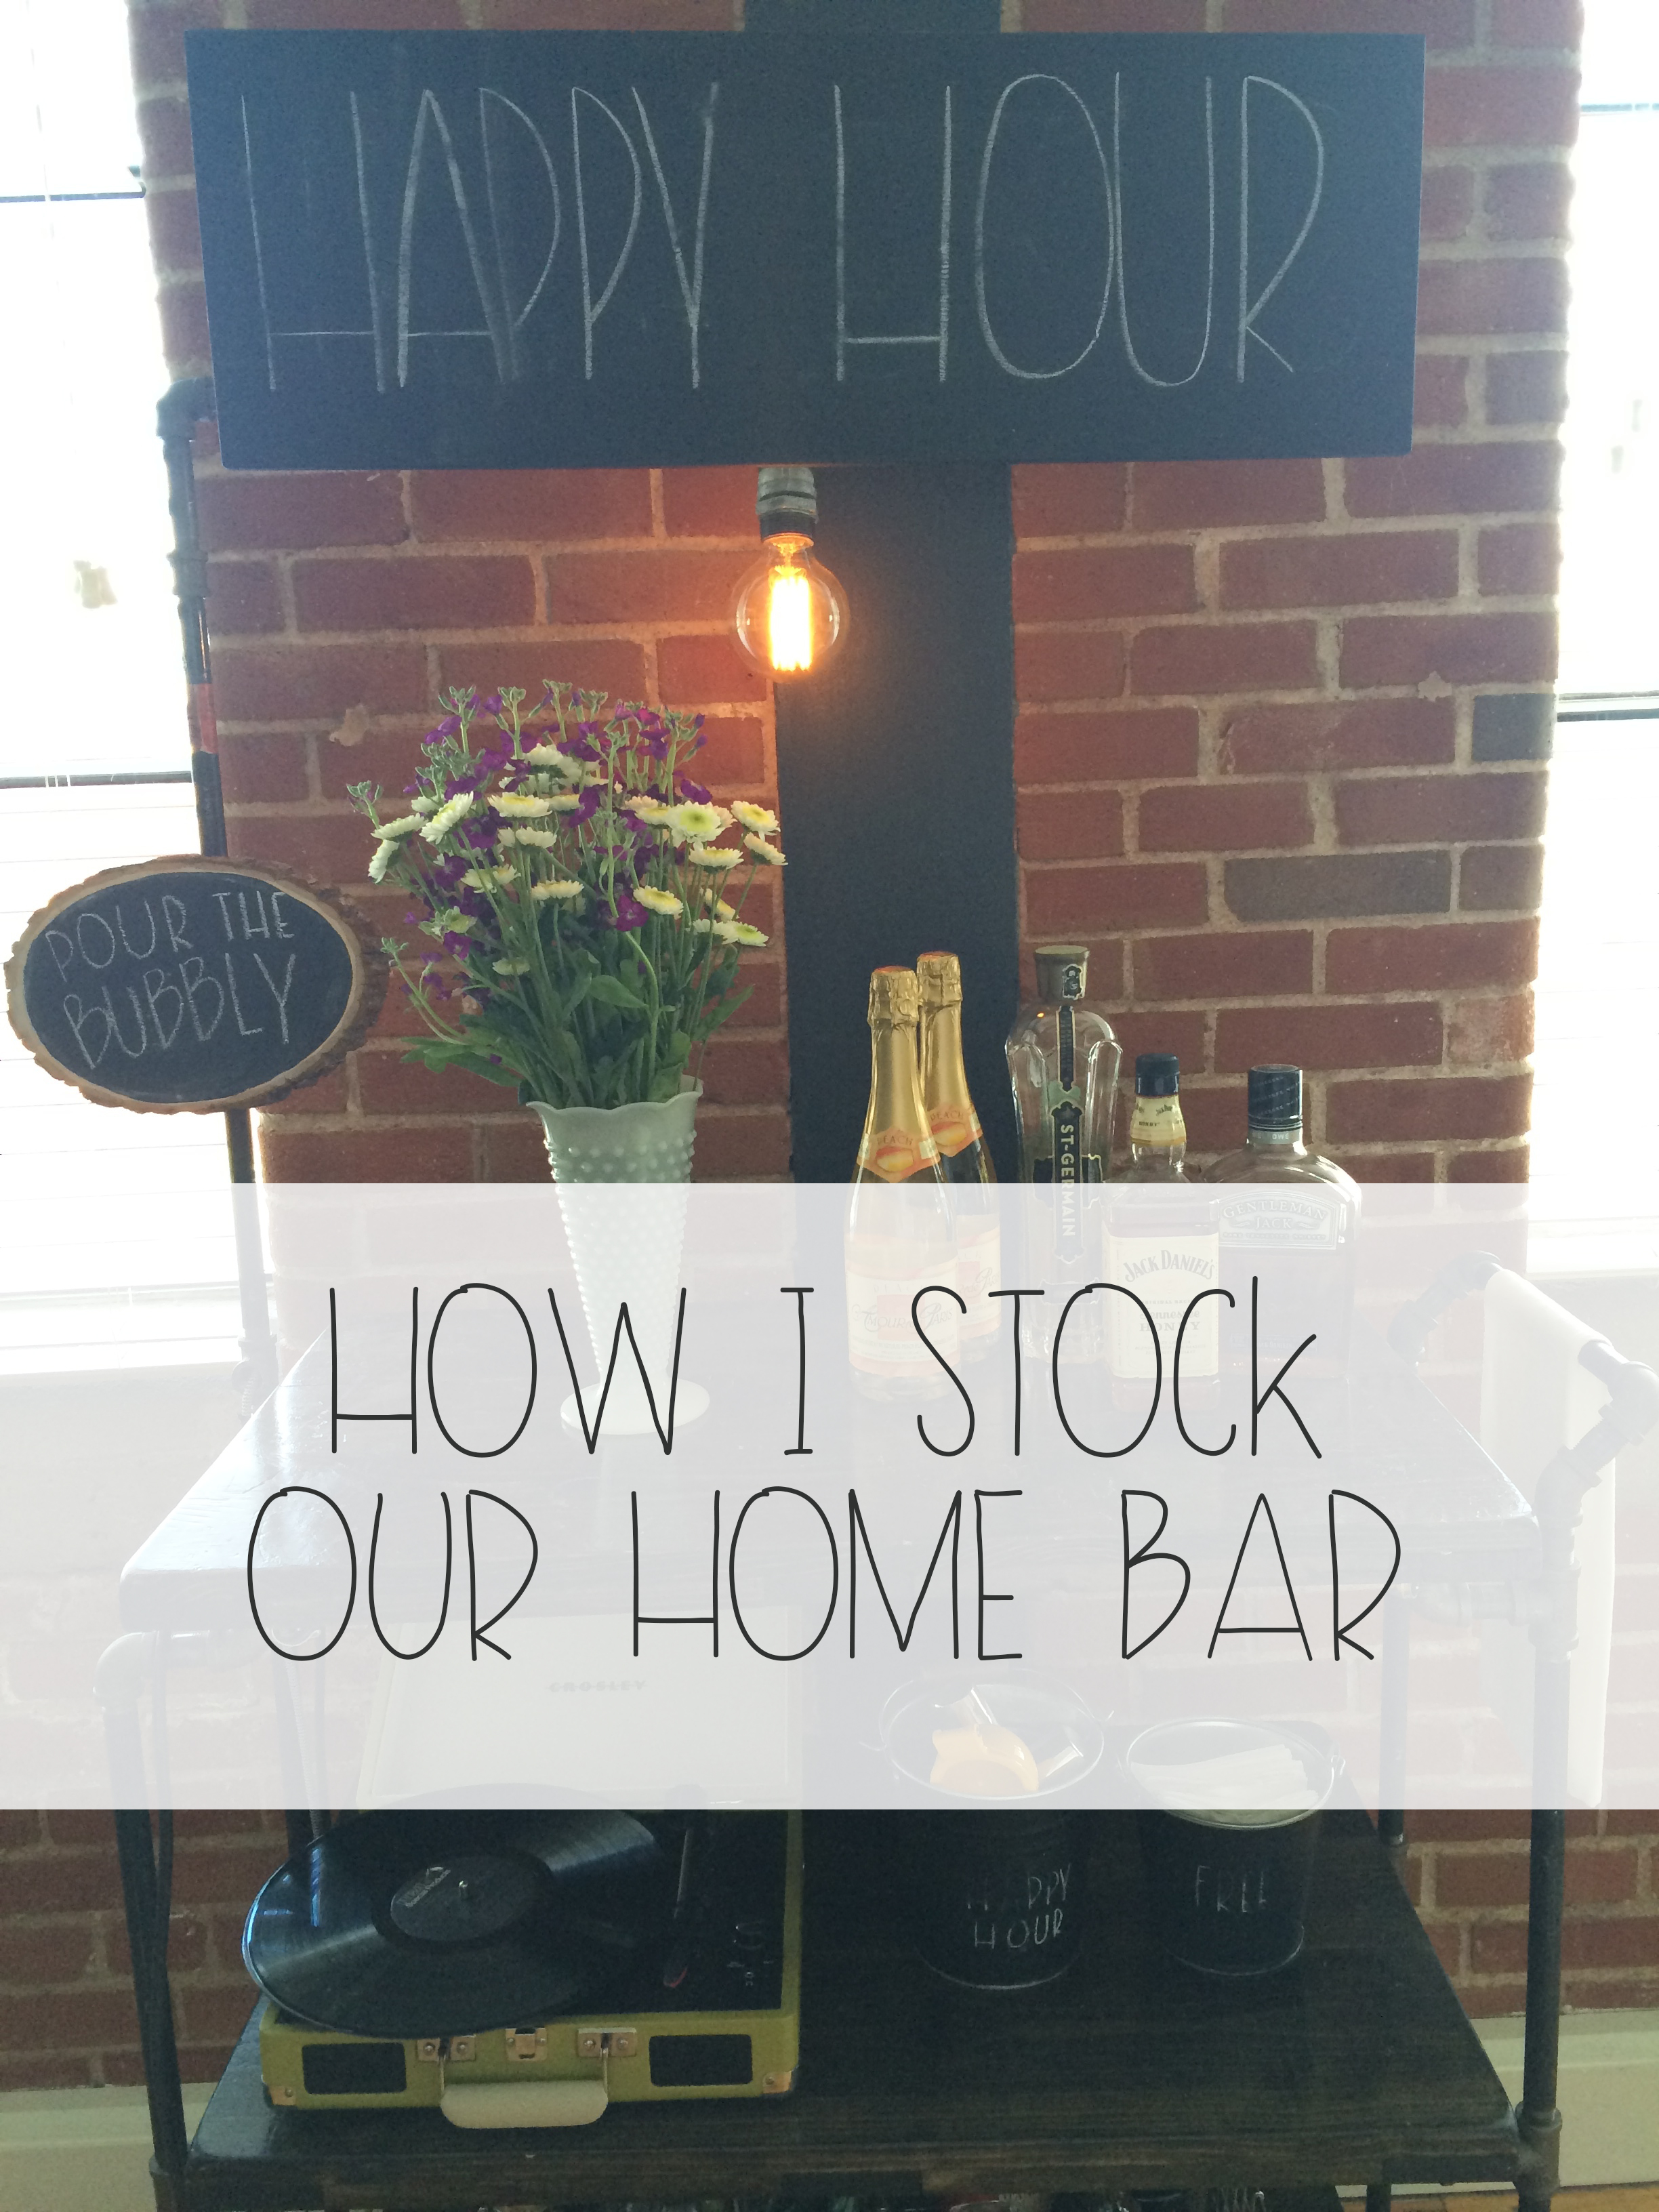 How I Stock Our Home Bar